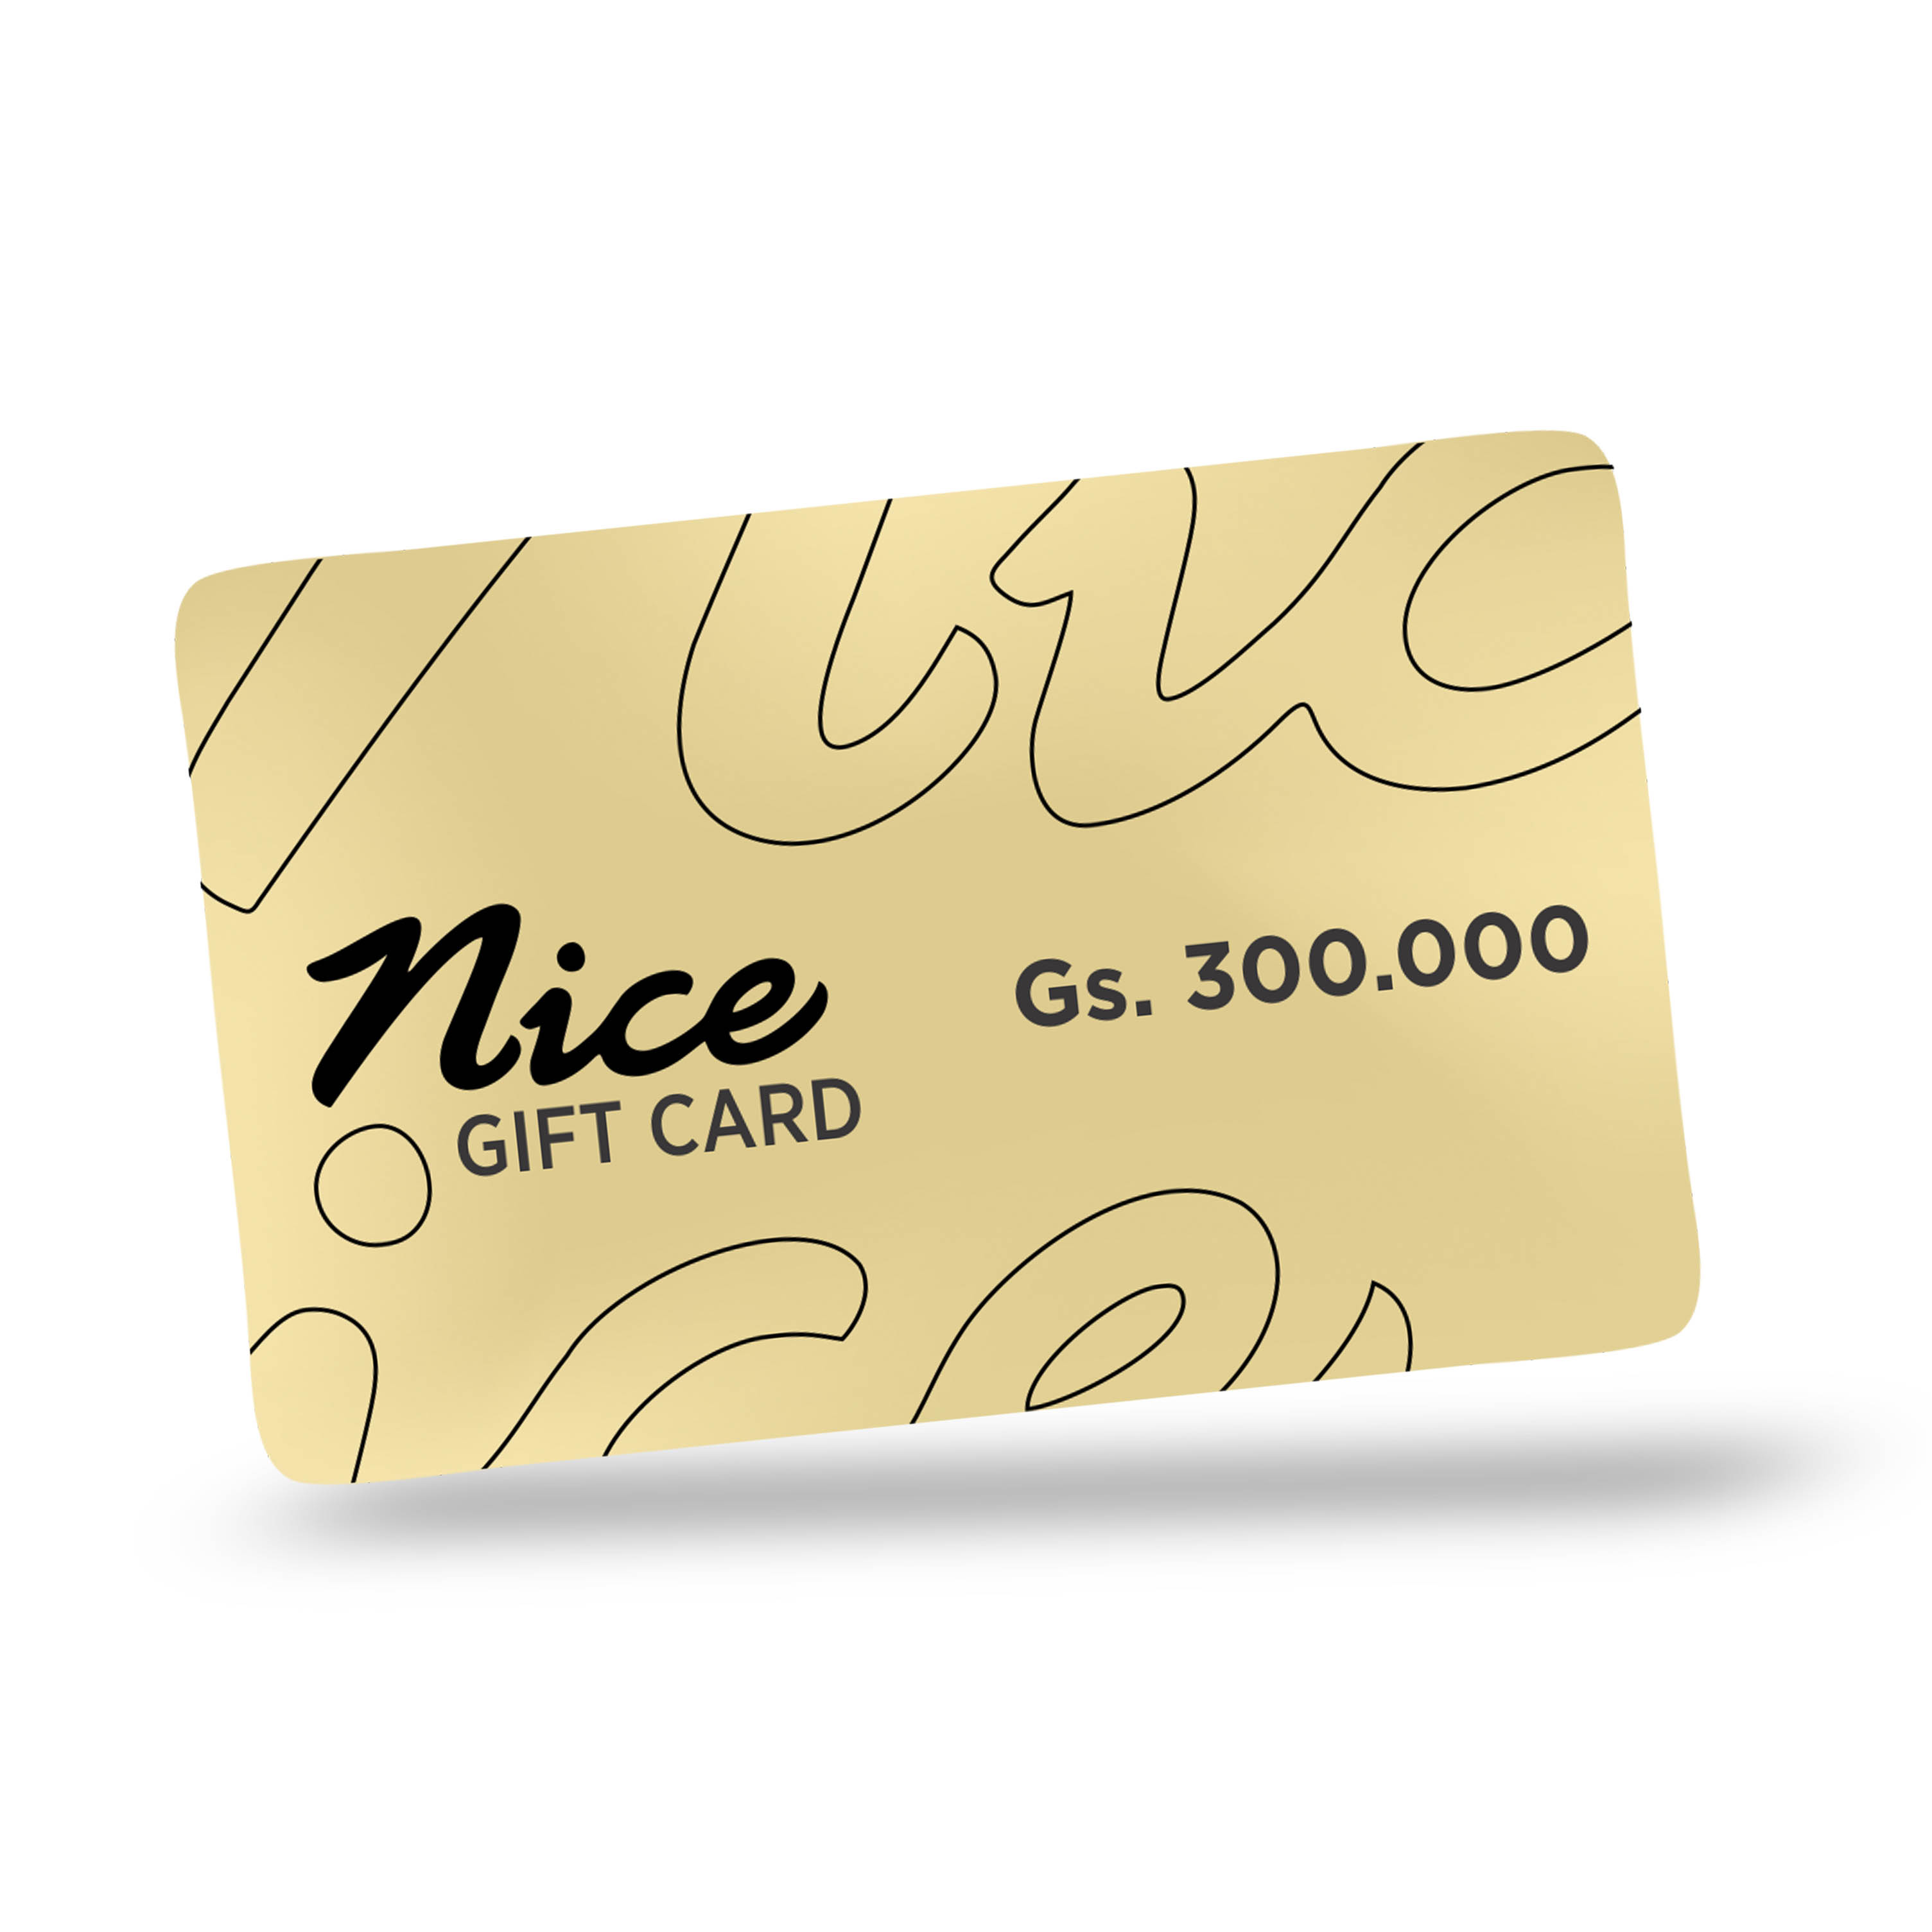 Gift Card Gs. 300.000